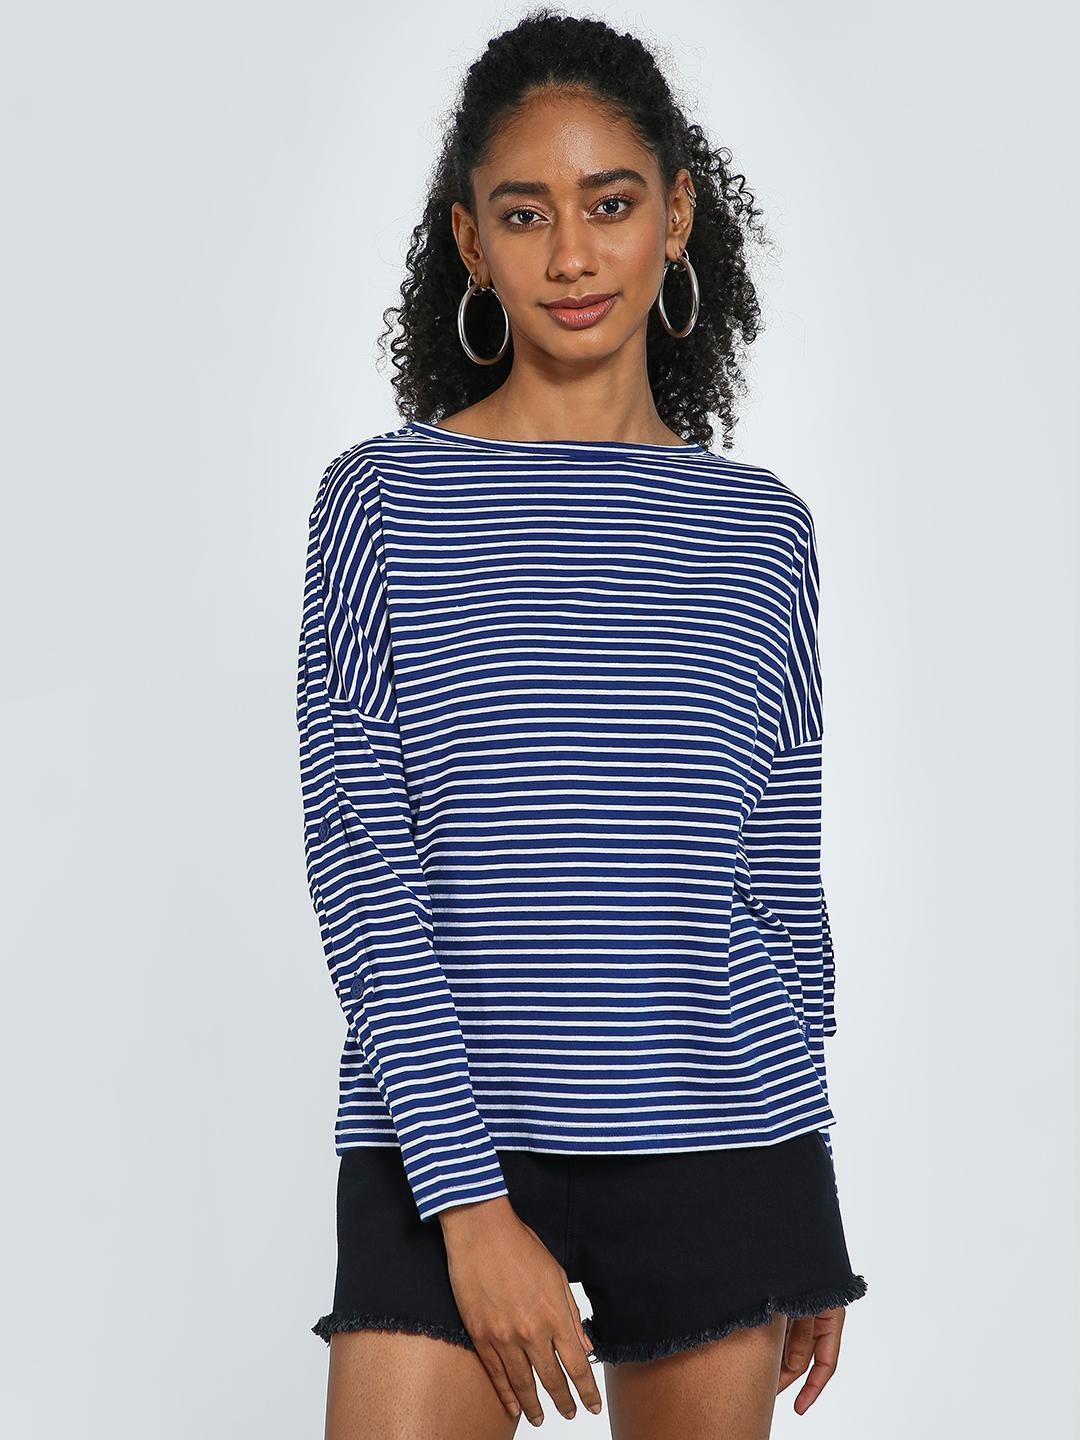 Blue Saint Navy All Over Horizontal Nautical Stripe Top 1